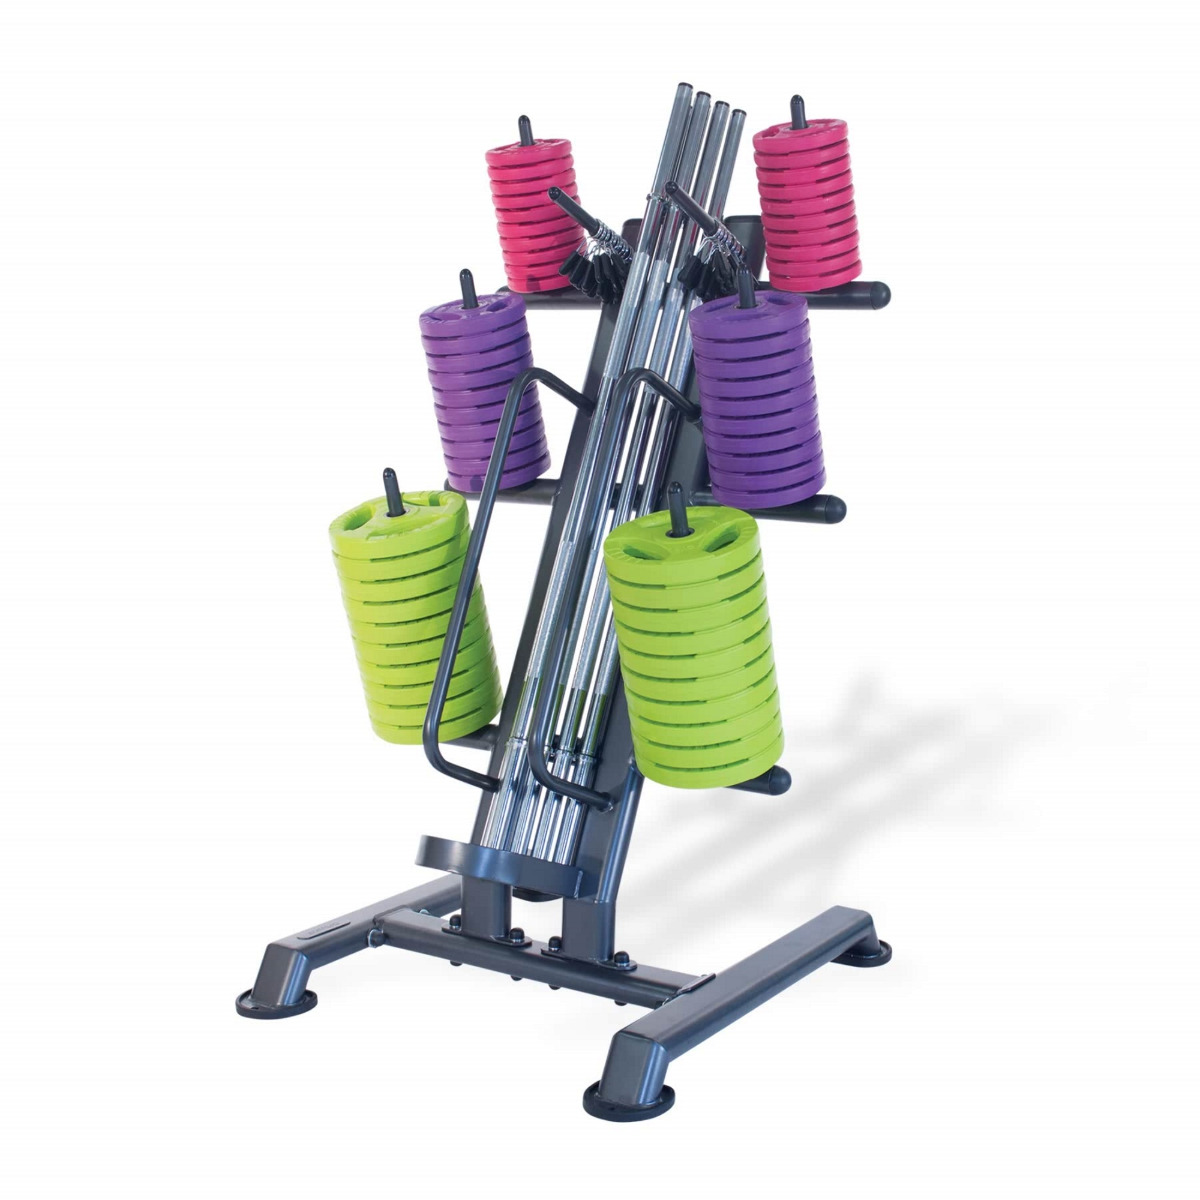 12 x Studio Pump Sets & Rack (Chrome Bar / Coloured Discs)